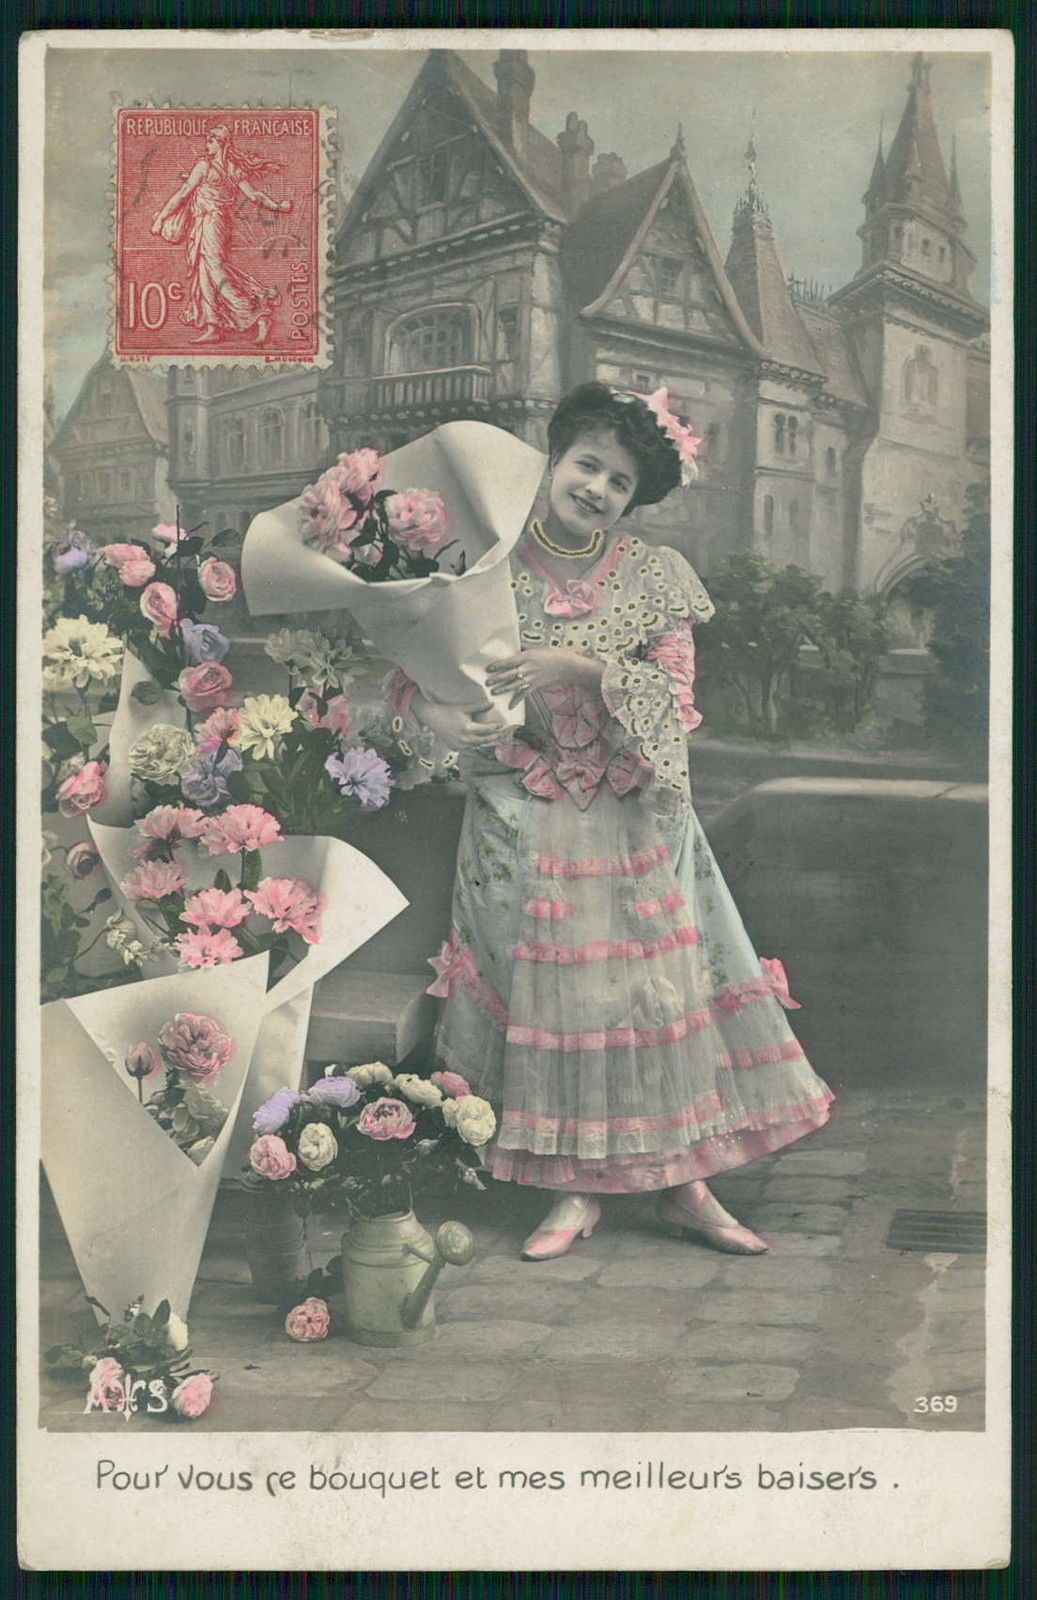 Edwardian Lady Flower Seller Postcard, Photo postcards